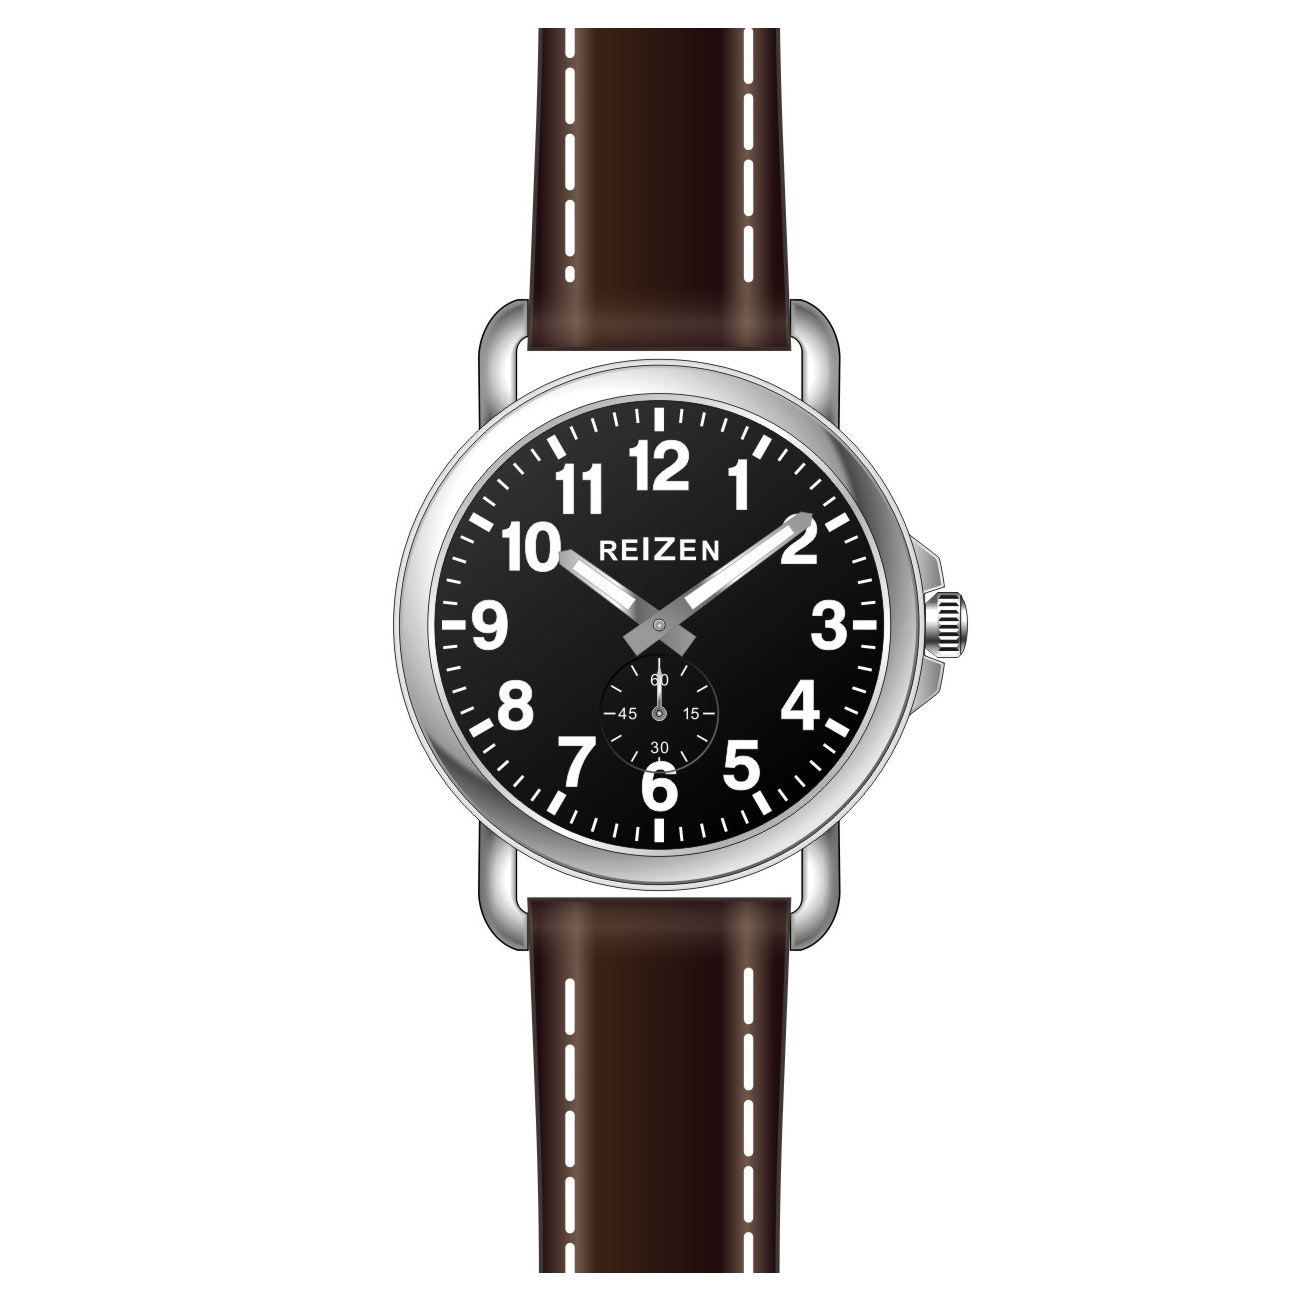 Reizen Mens Low Vision Watch - Black Face - Leather Band